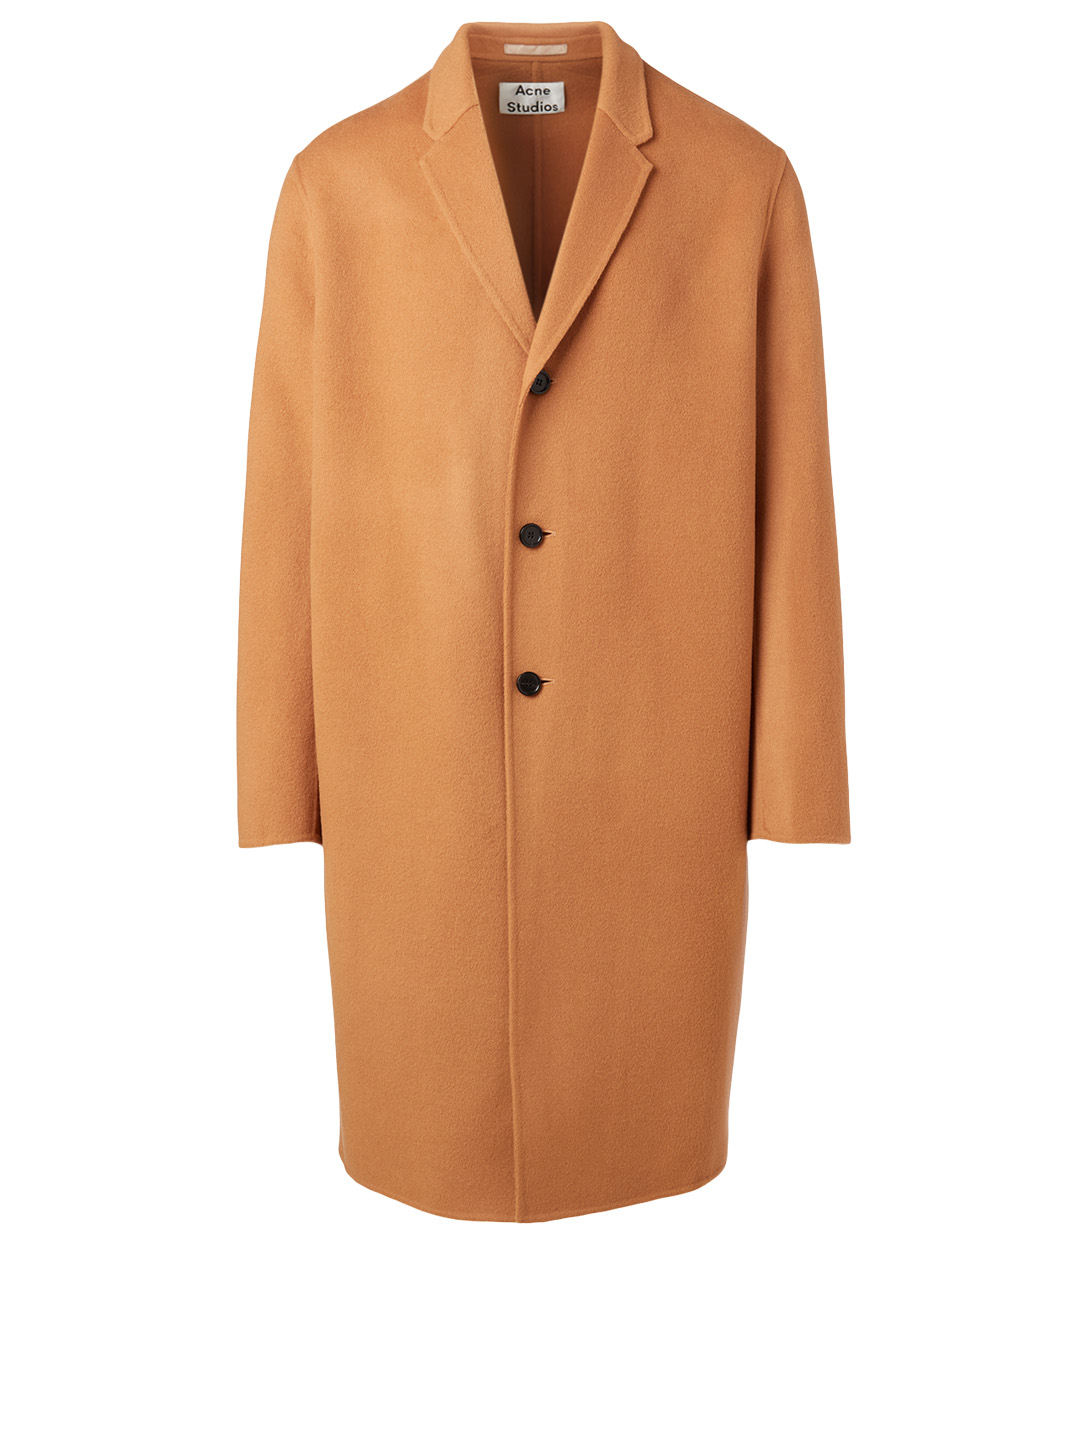 ACNE STUDIOS Wool And Cashmere Long Coat Men's Brown